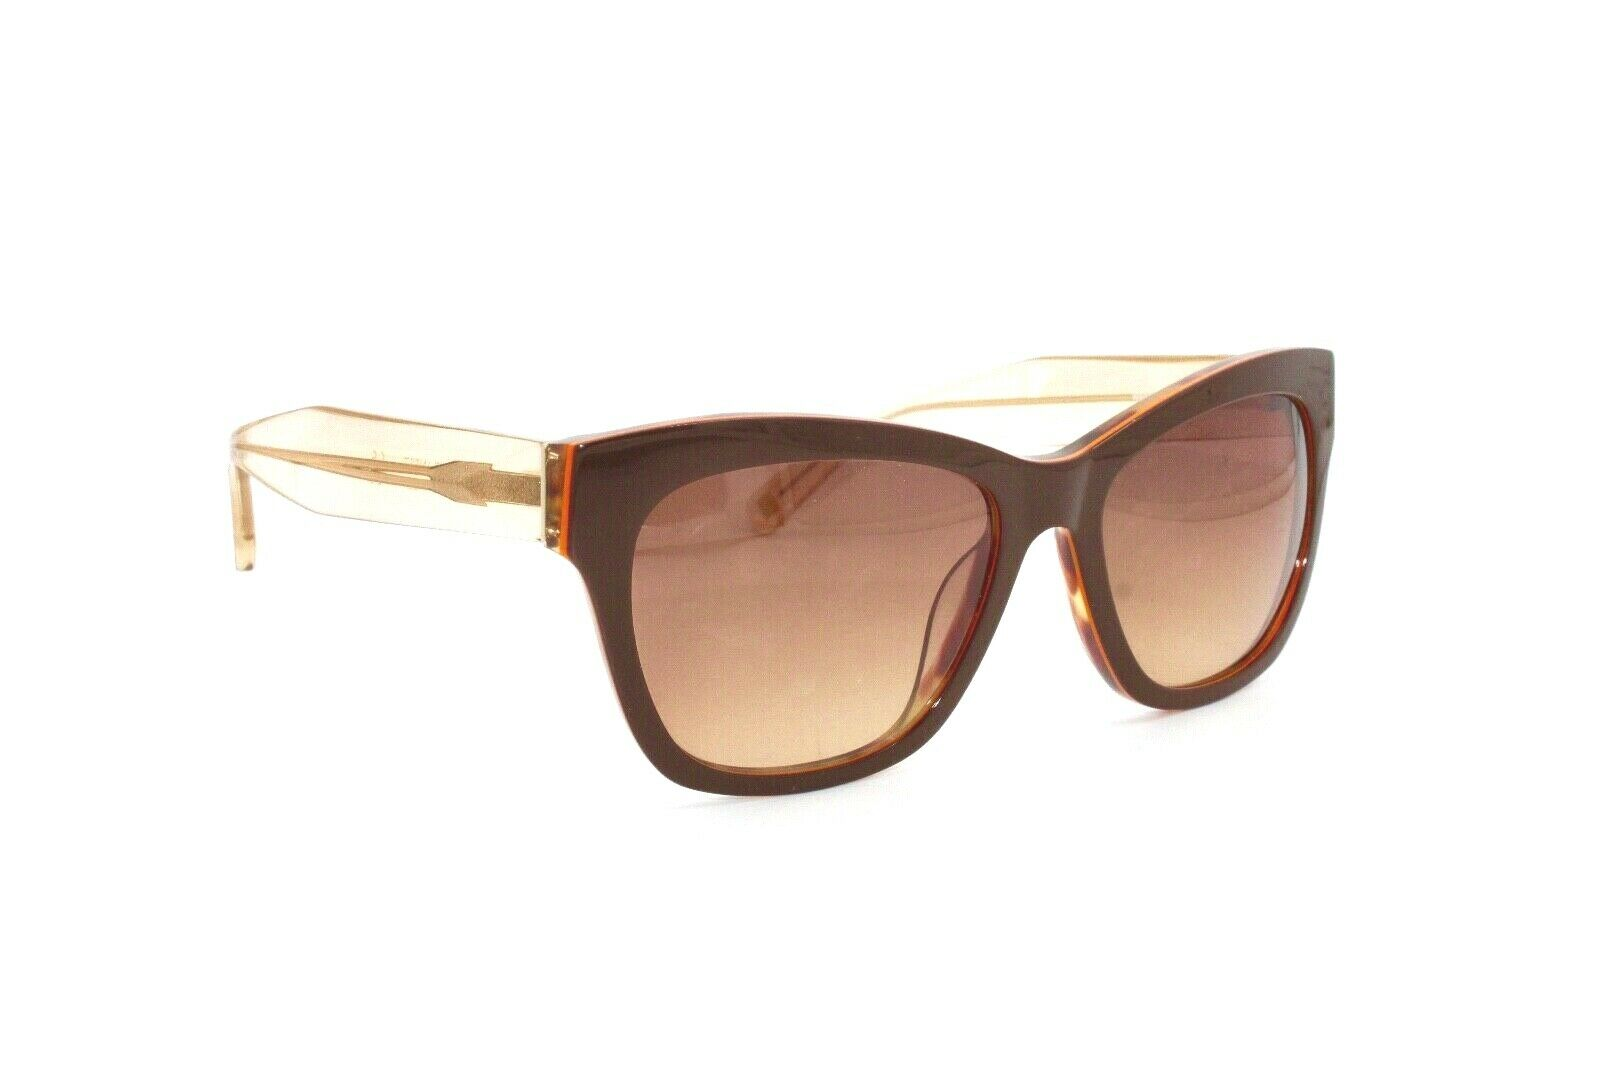 Nine West Sunglasses NW582S 228 56 18 135 - Mydesigneroptic